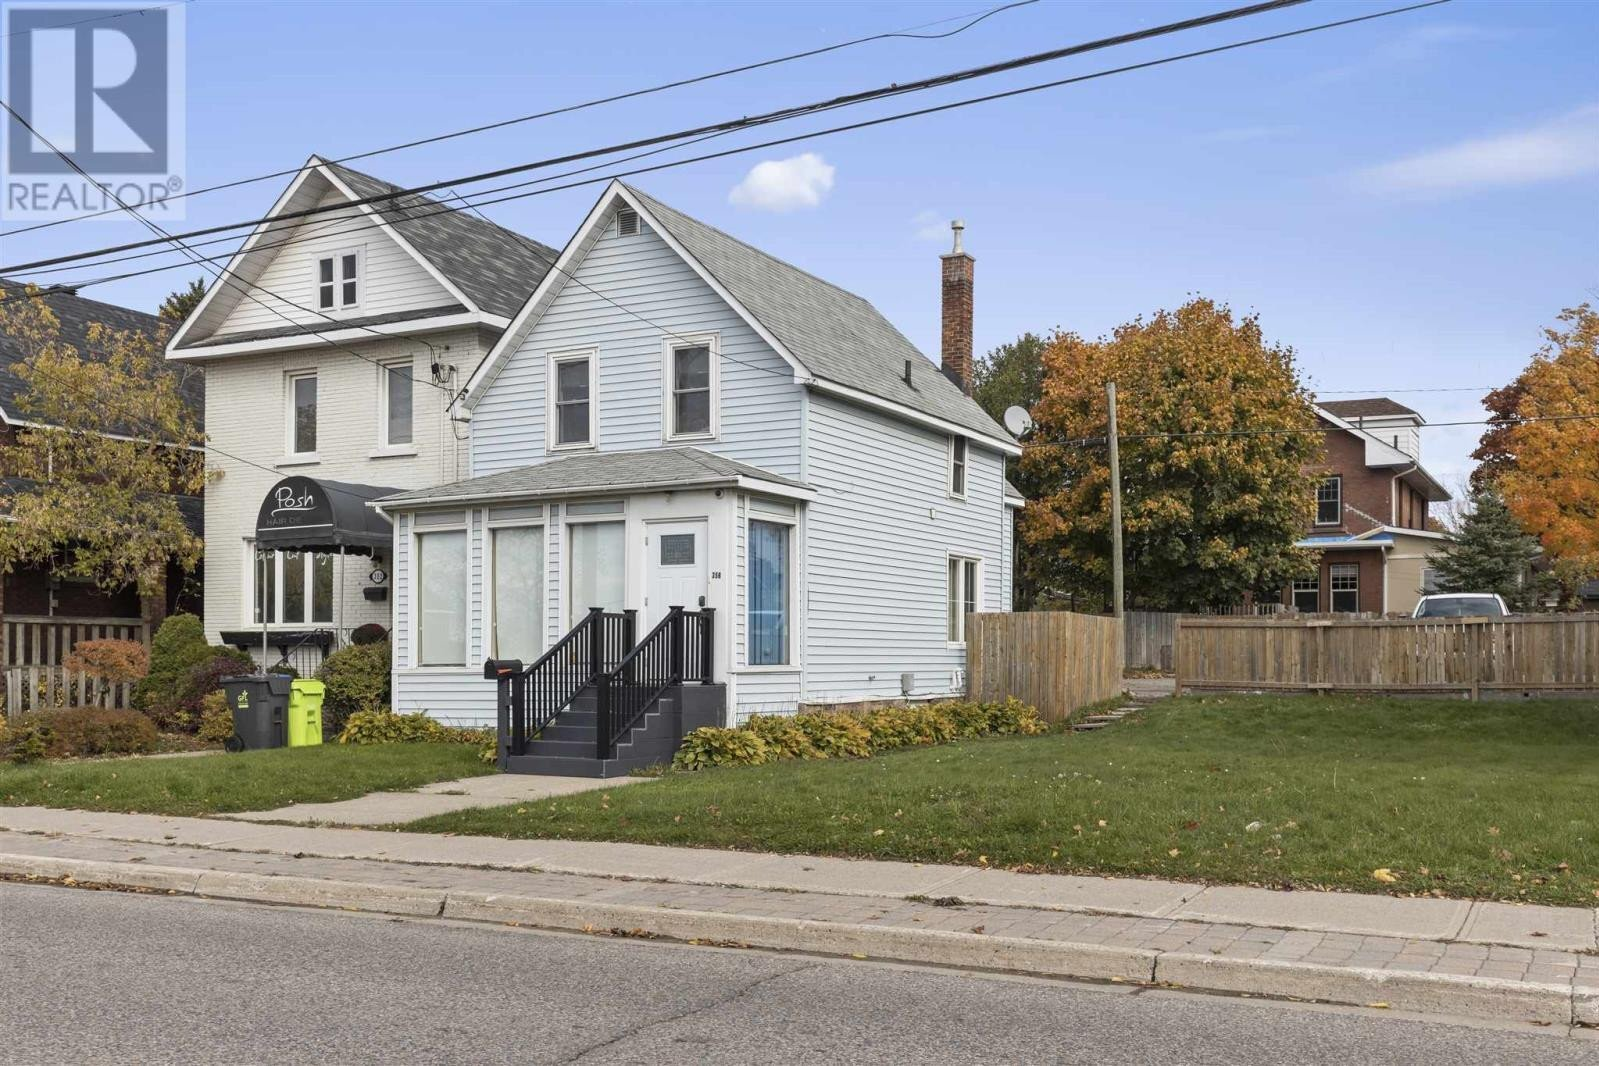 House for sale at 356 Albert St E Sault Ste. Marie Ontario - MLS: SM130098